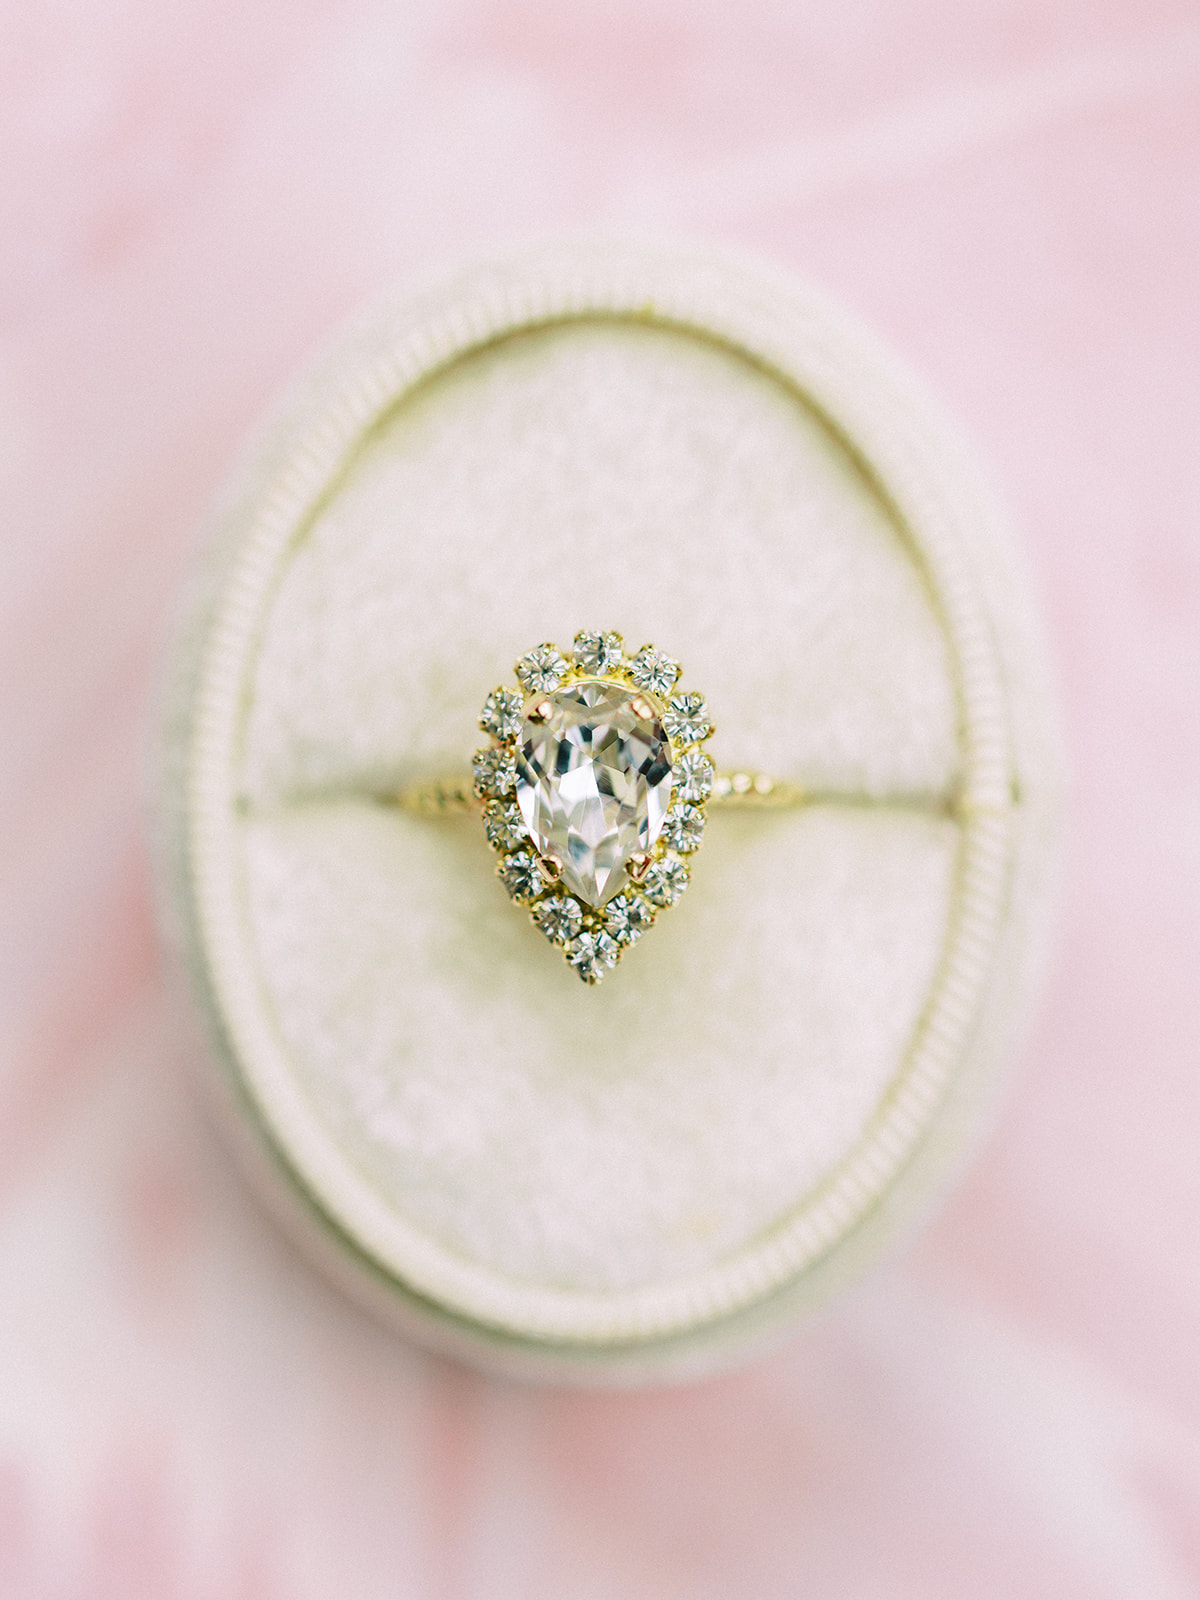 Pear shaped engagement ring: Whimsical garden elegance styled shoot featured on Alexa Kay Events